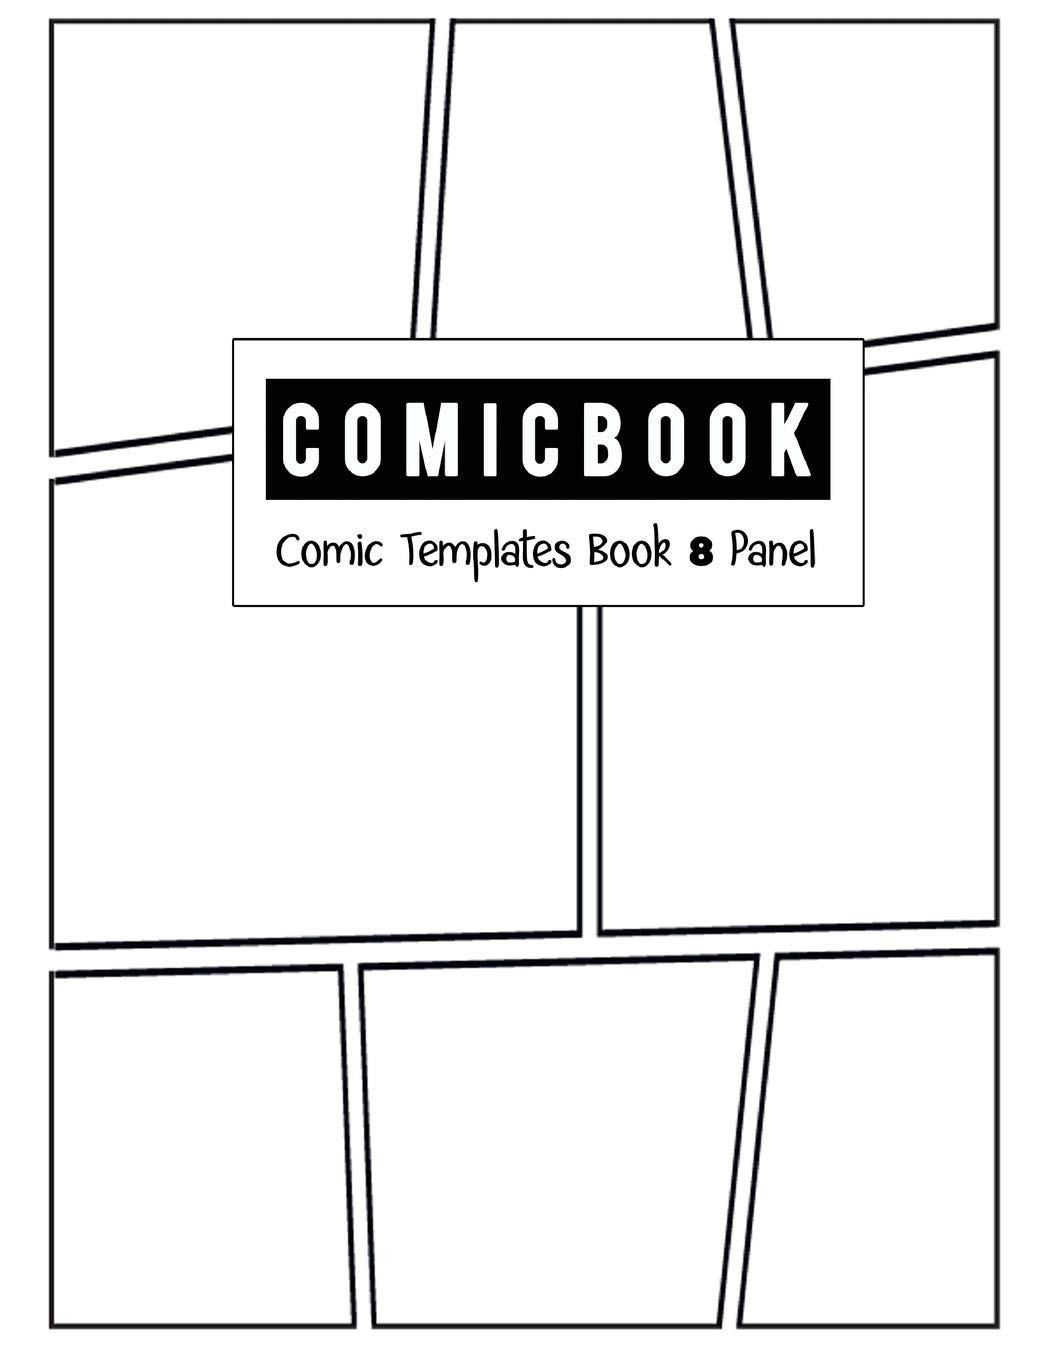 Comic Book Strips Template